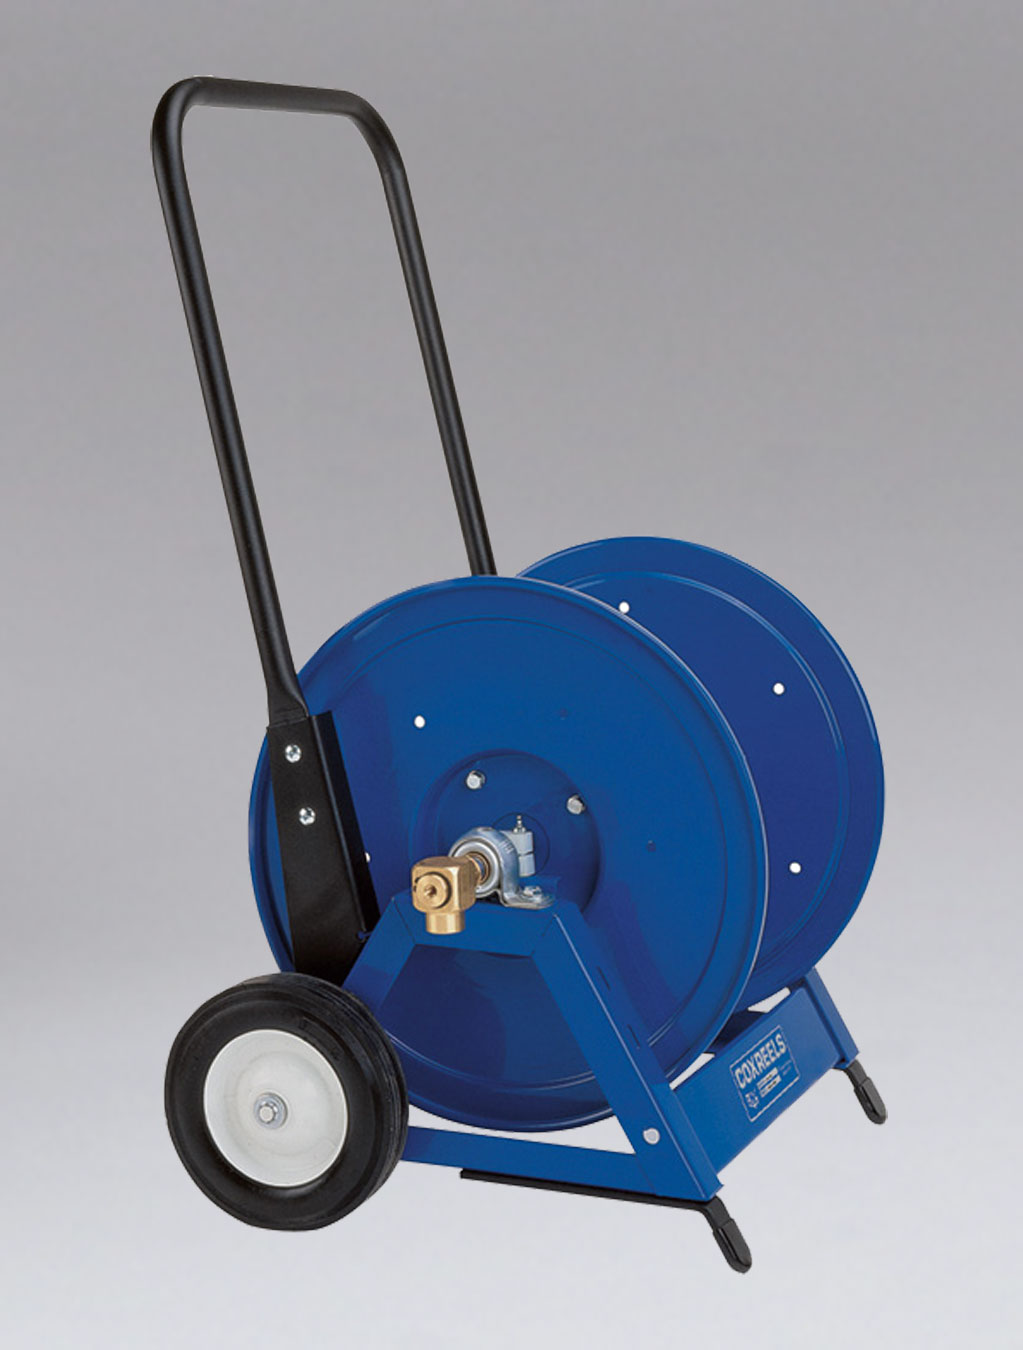 NIKRO 860817 - Heavy Duty Hand Hose Reel w/Cart - Air Duct Cleaning Equipment & Supplies 